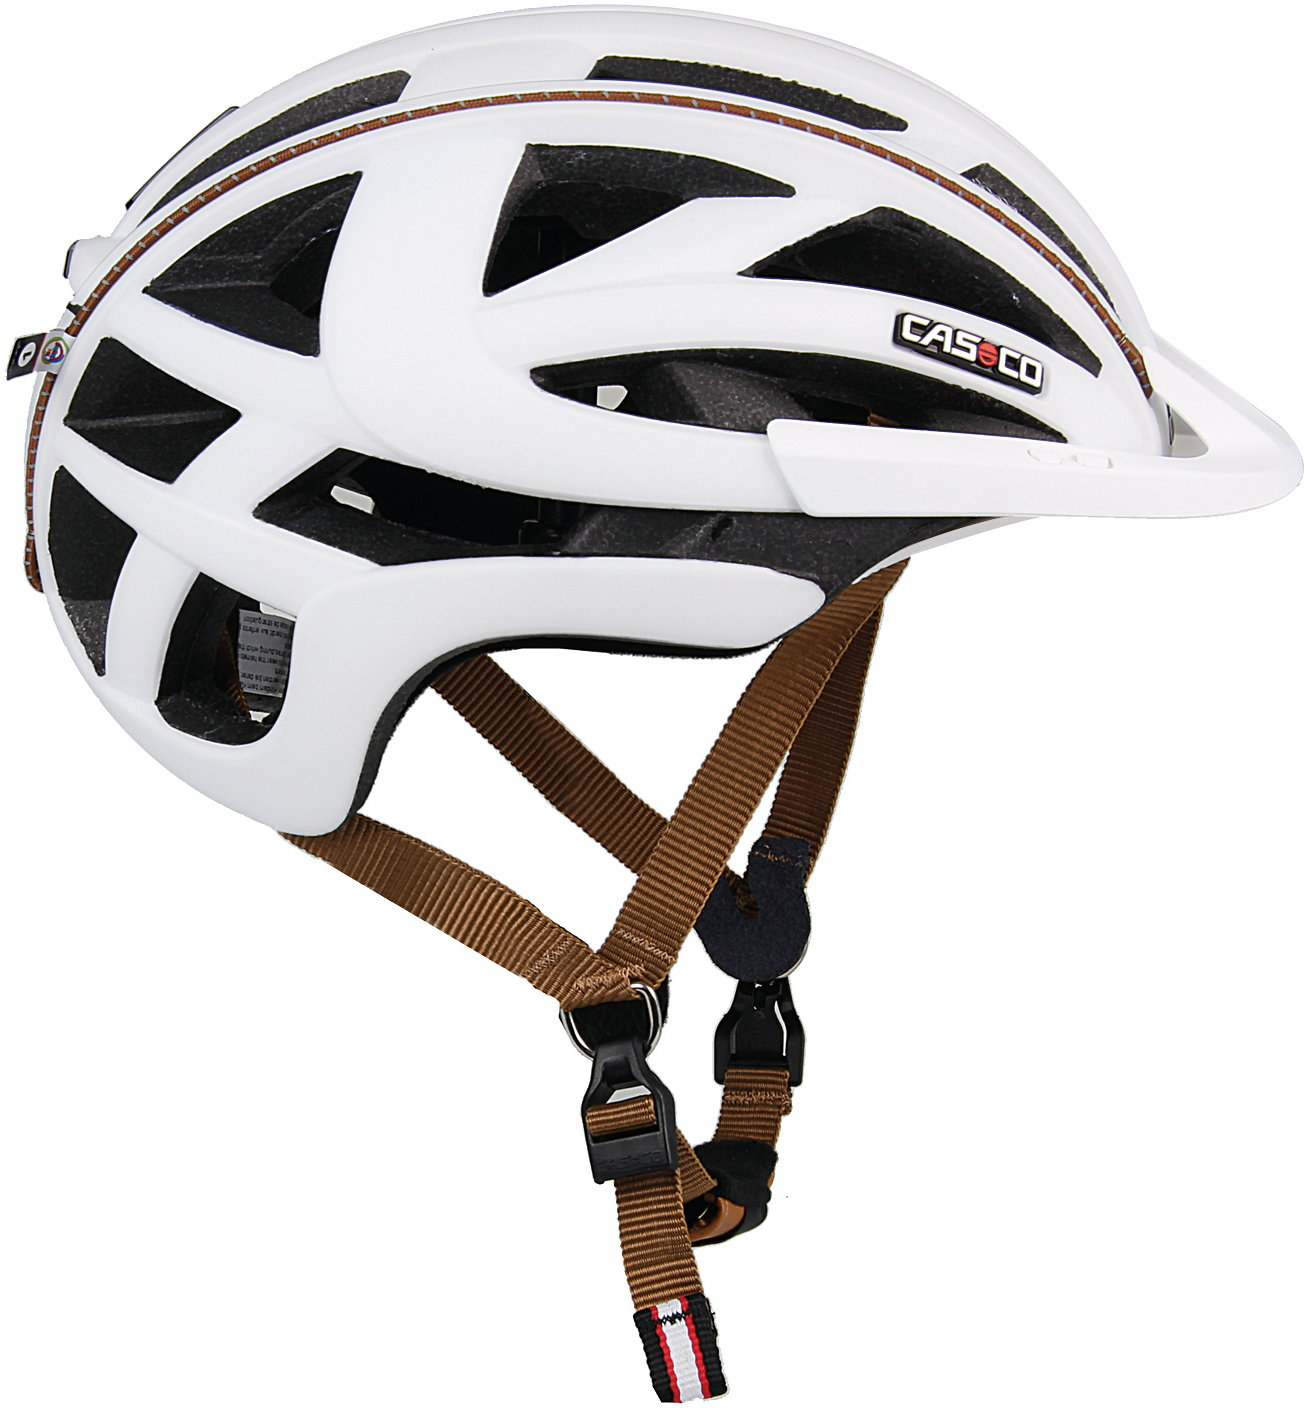 Casco_Sportiv-TC_White_Brown_1723